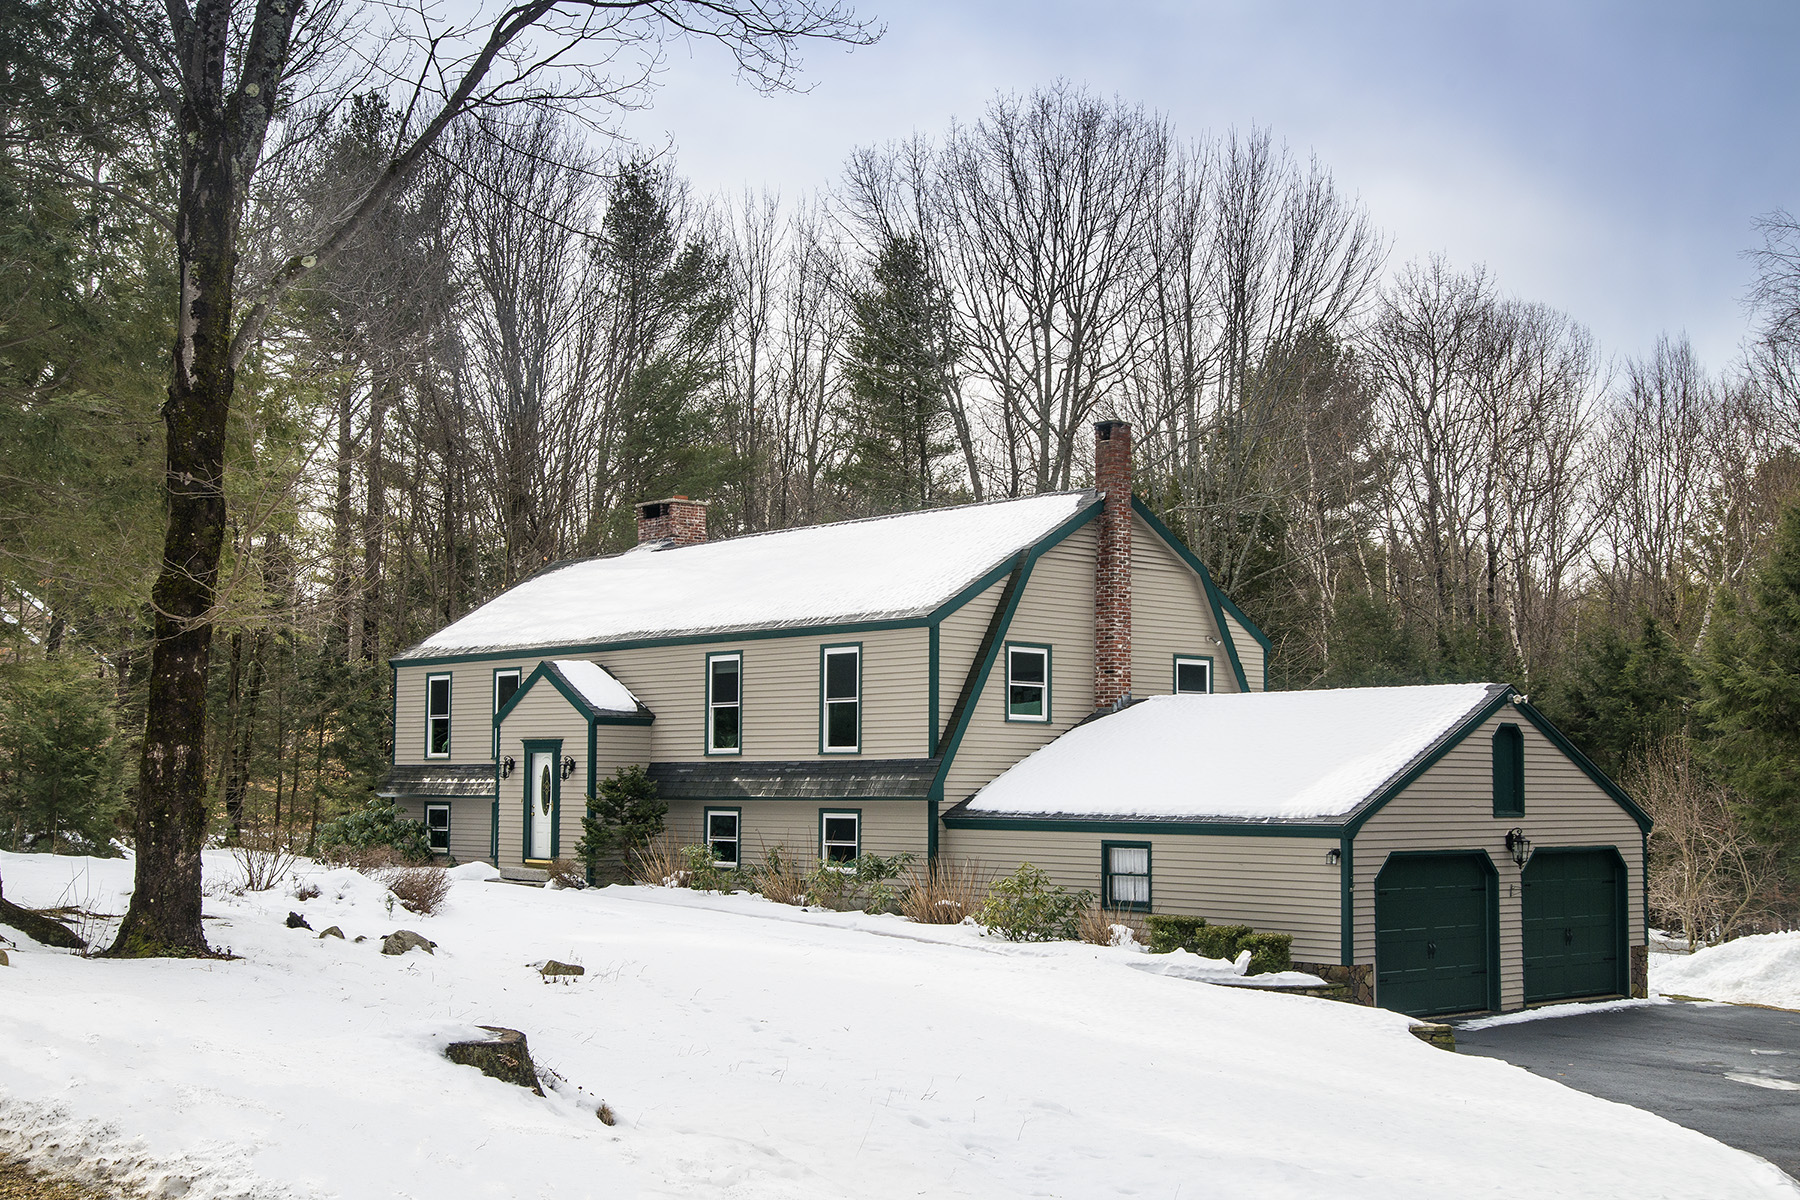 Single Family Home for Sale at 30 Edna Lane North Yarmouth, Maine, 04097 United States